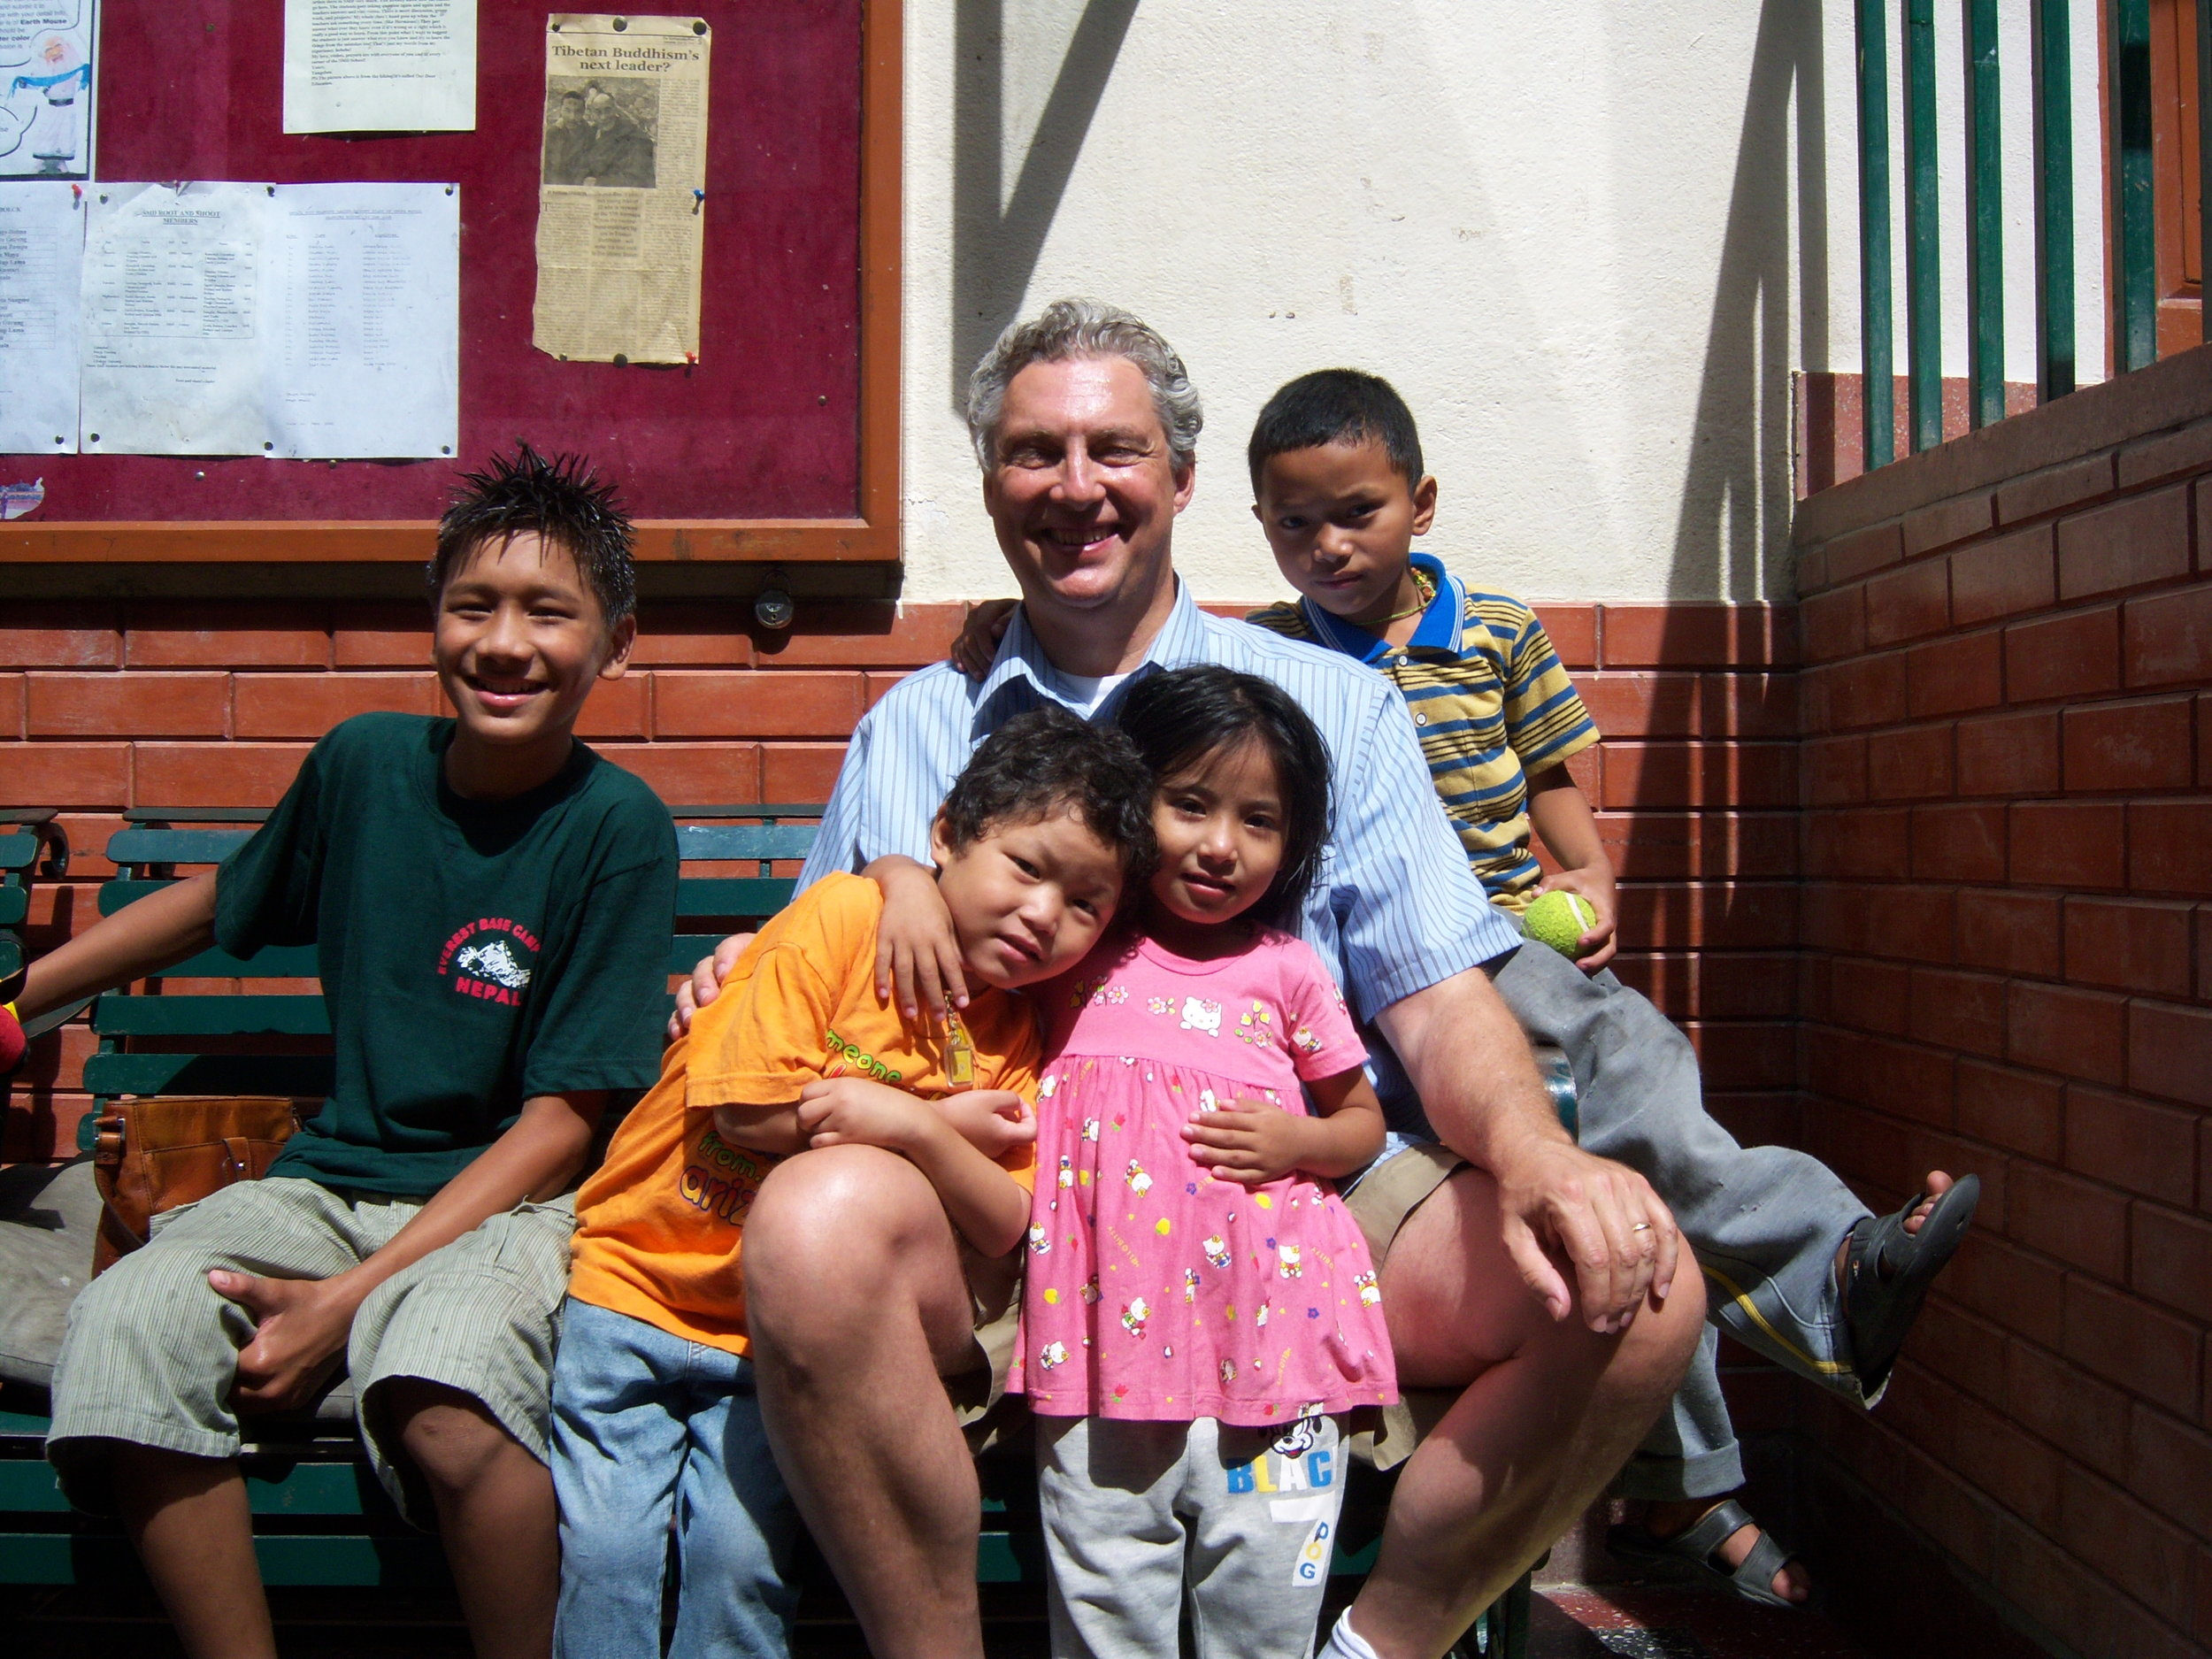 David with son Dorje and friends in Kathmandu, Nepal